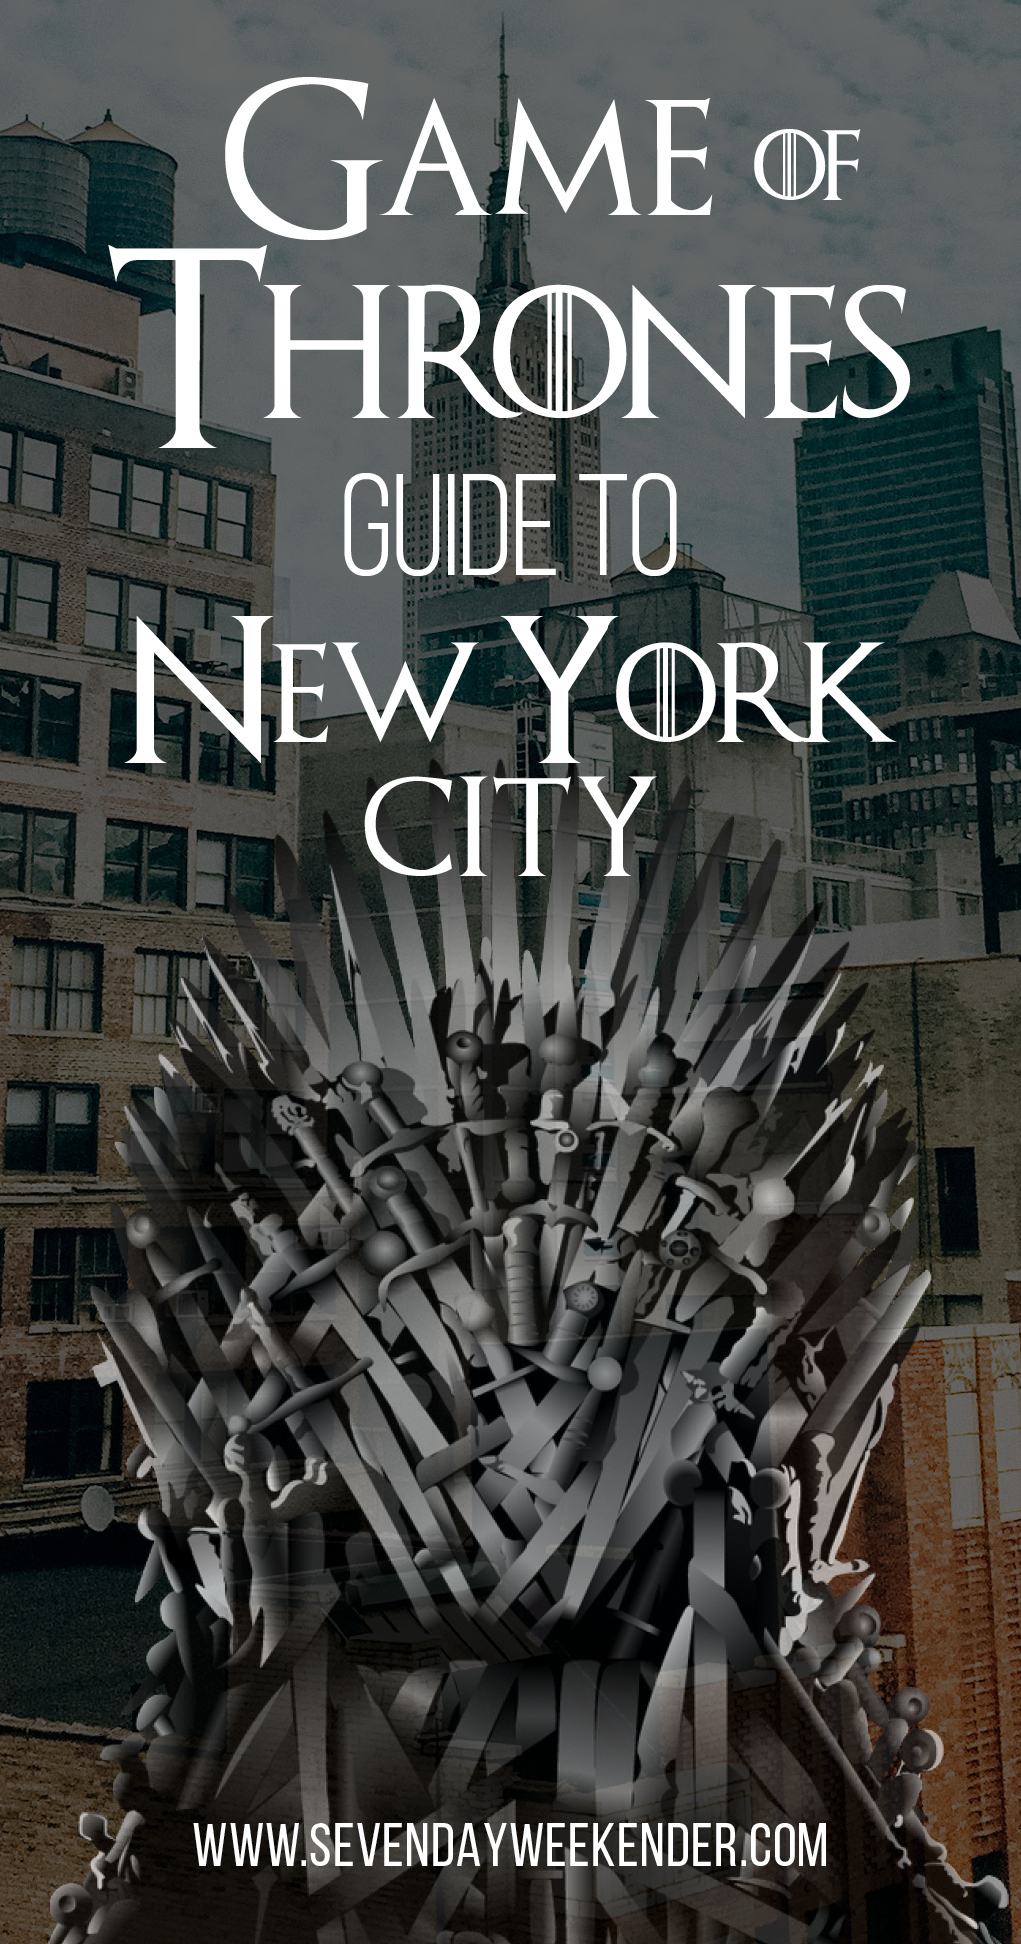 Game of Thrones Guide to New York City